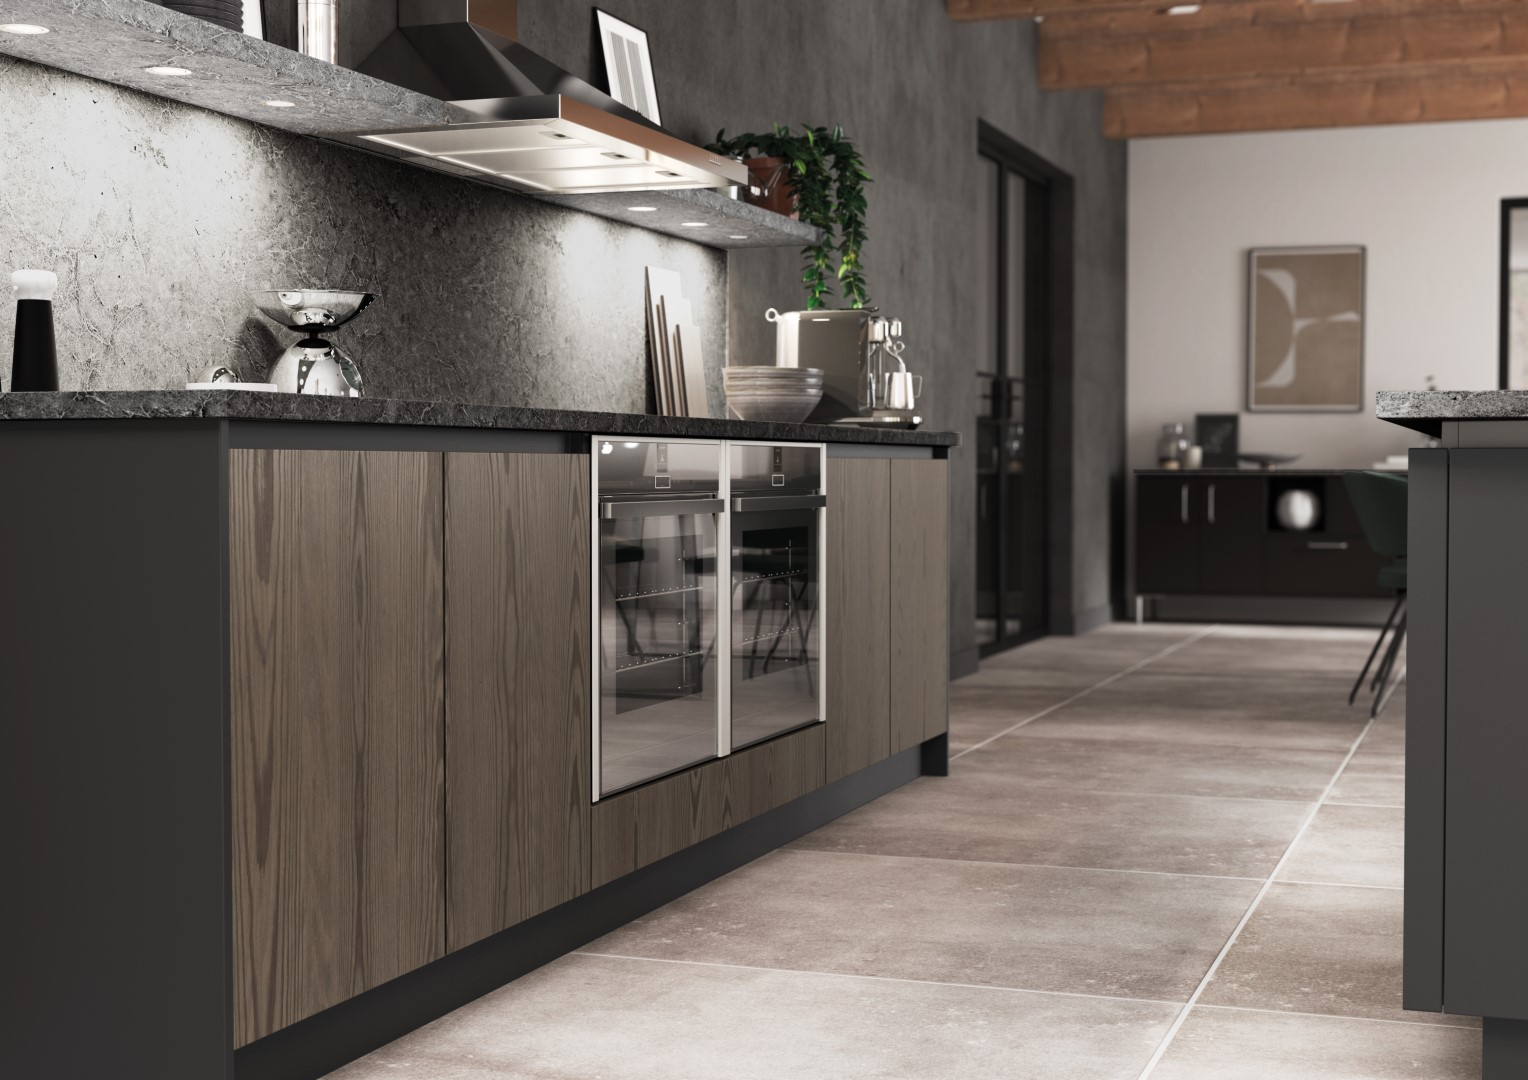 Kelso stained Truffle Grey and Zola Matte Graphite - Kitchen Design - Alan Kelly Kitchens - Waterford - 1